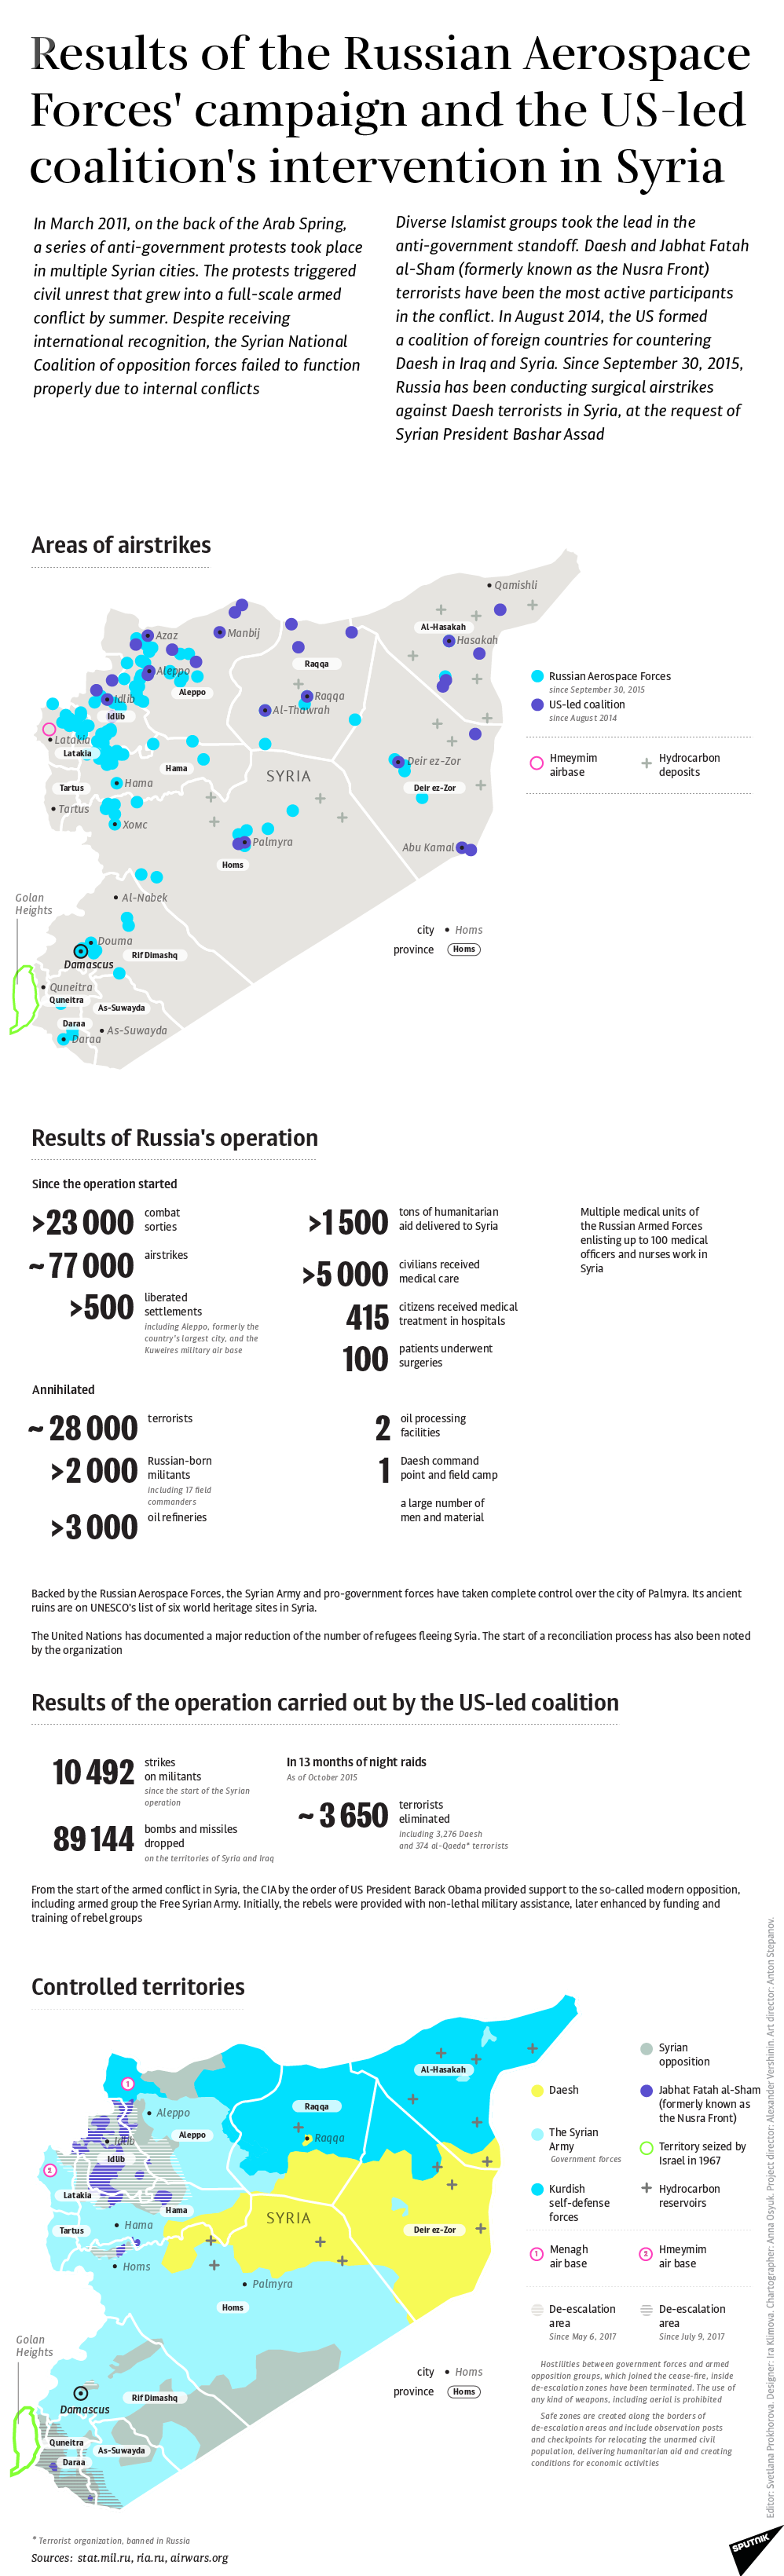 Results of Russian Air Campaign and US-led Coalition Intervention in Syria